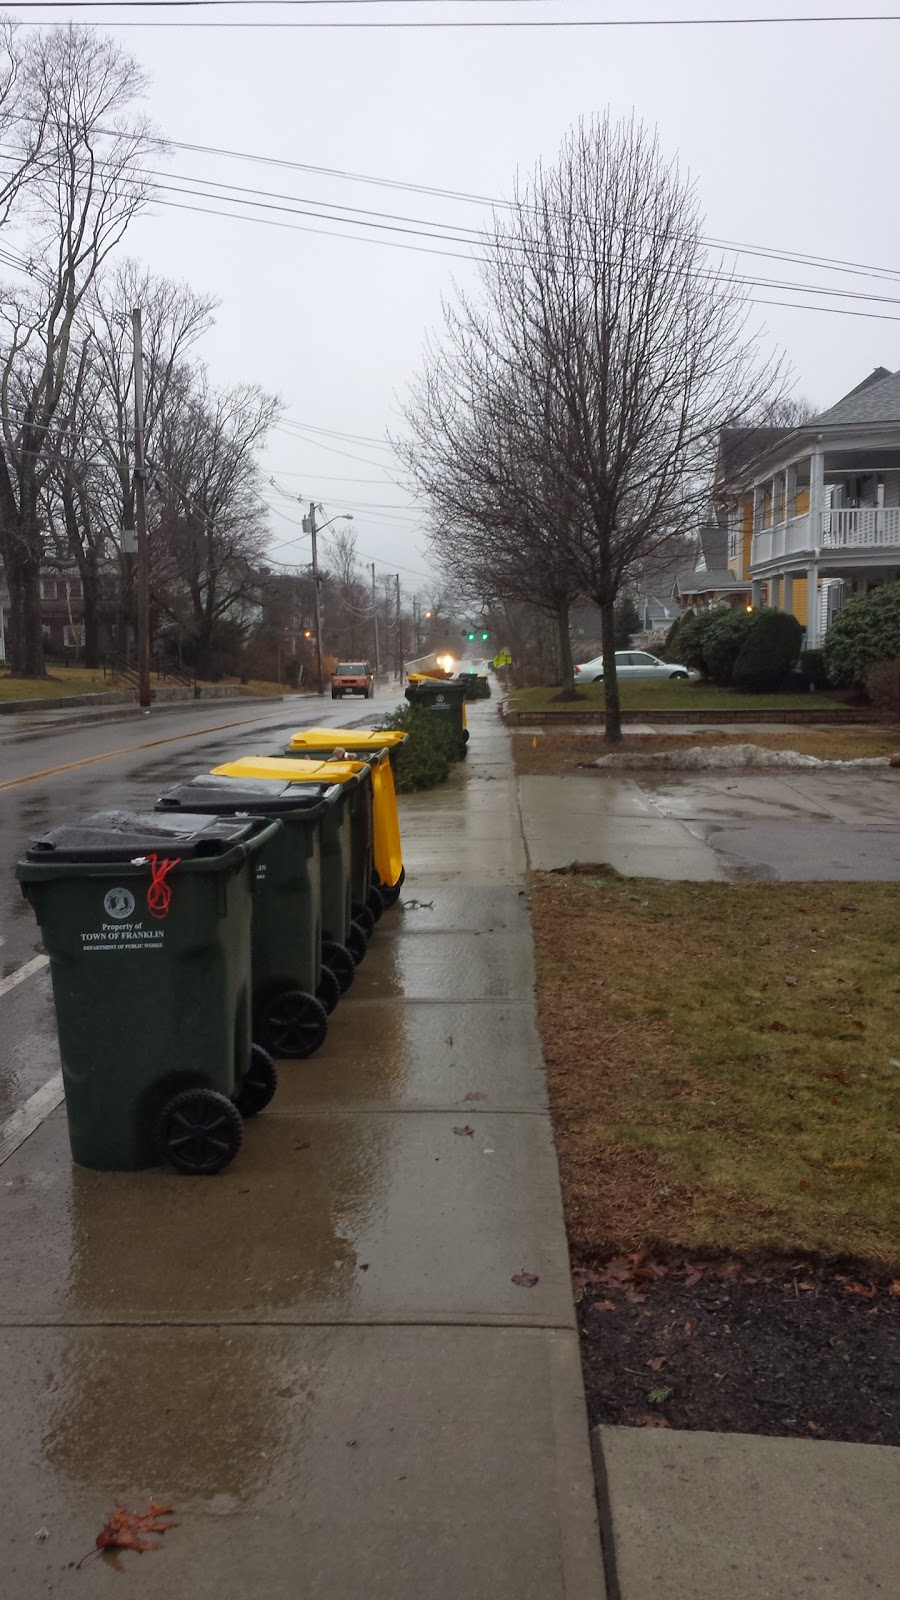 trash/recycle lined up for pickup